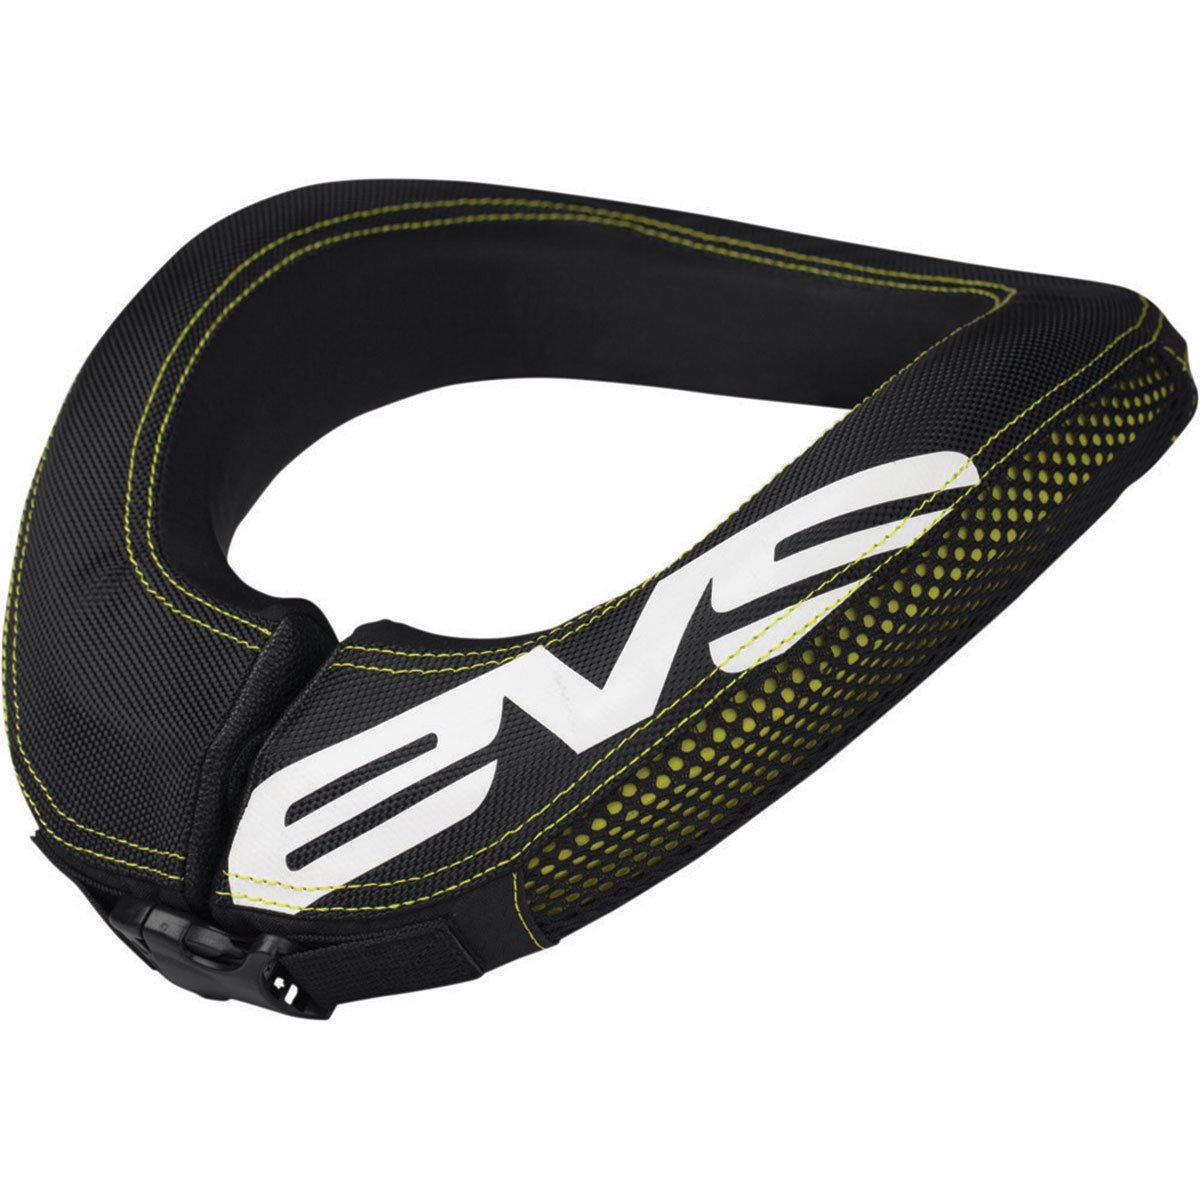 EVS RC2 Adult Race Collar MotoX/Off-Road/Dirt Bike Motorcycle Body Armor - Black/One Size by EVS (Image #1)